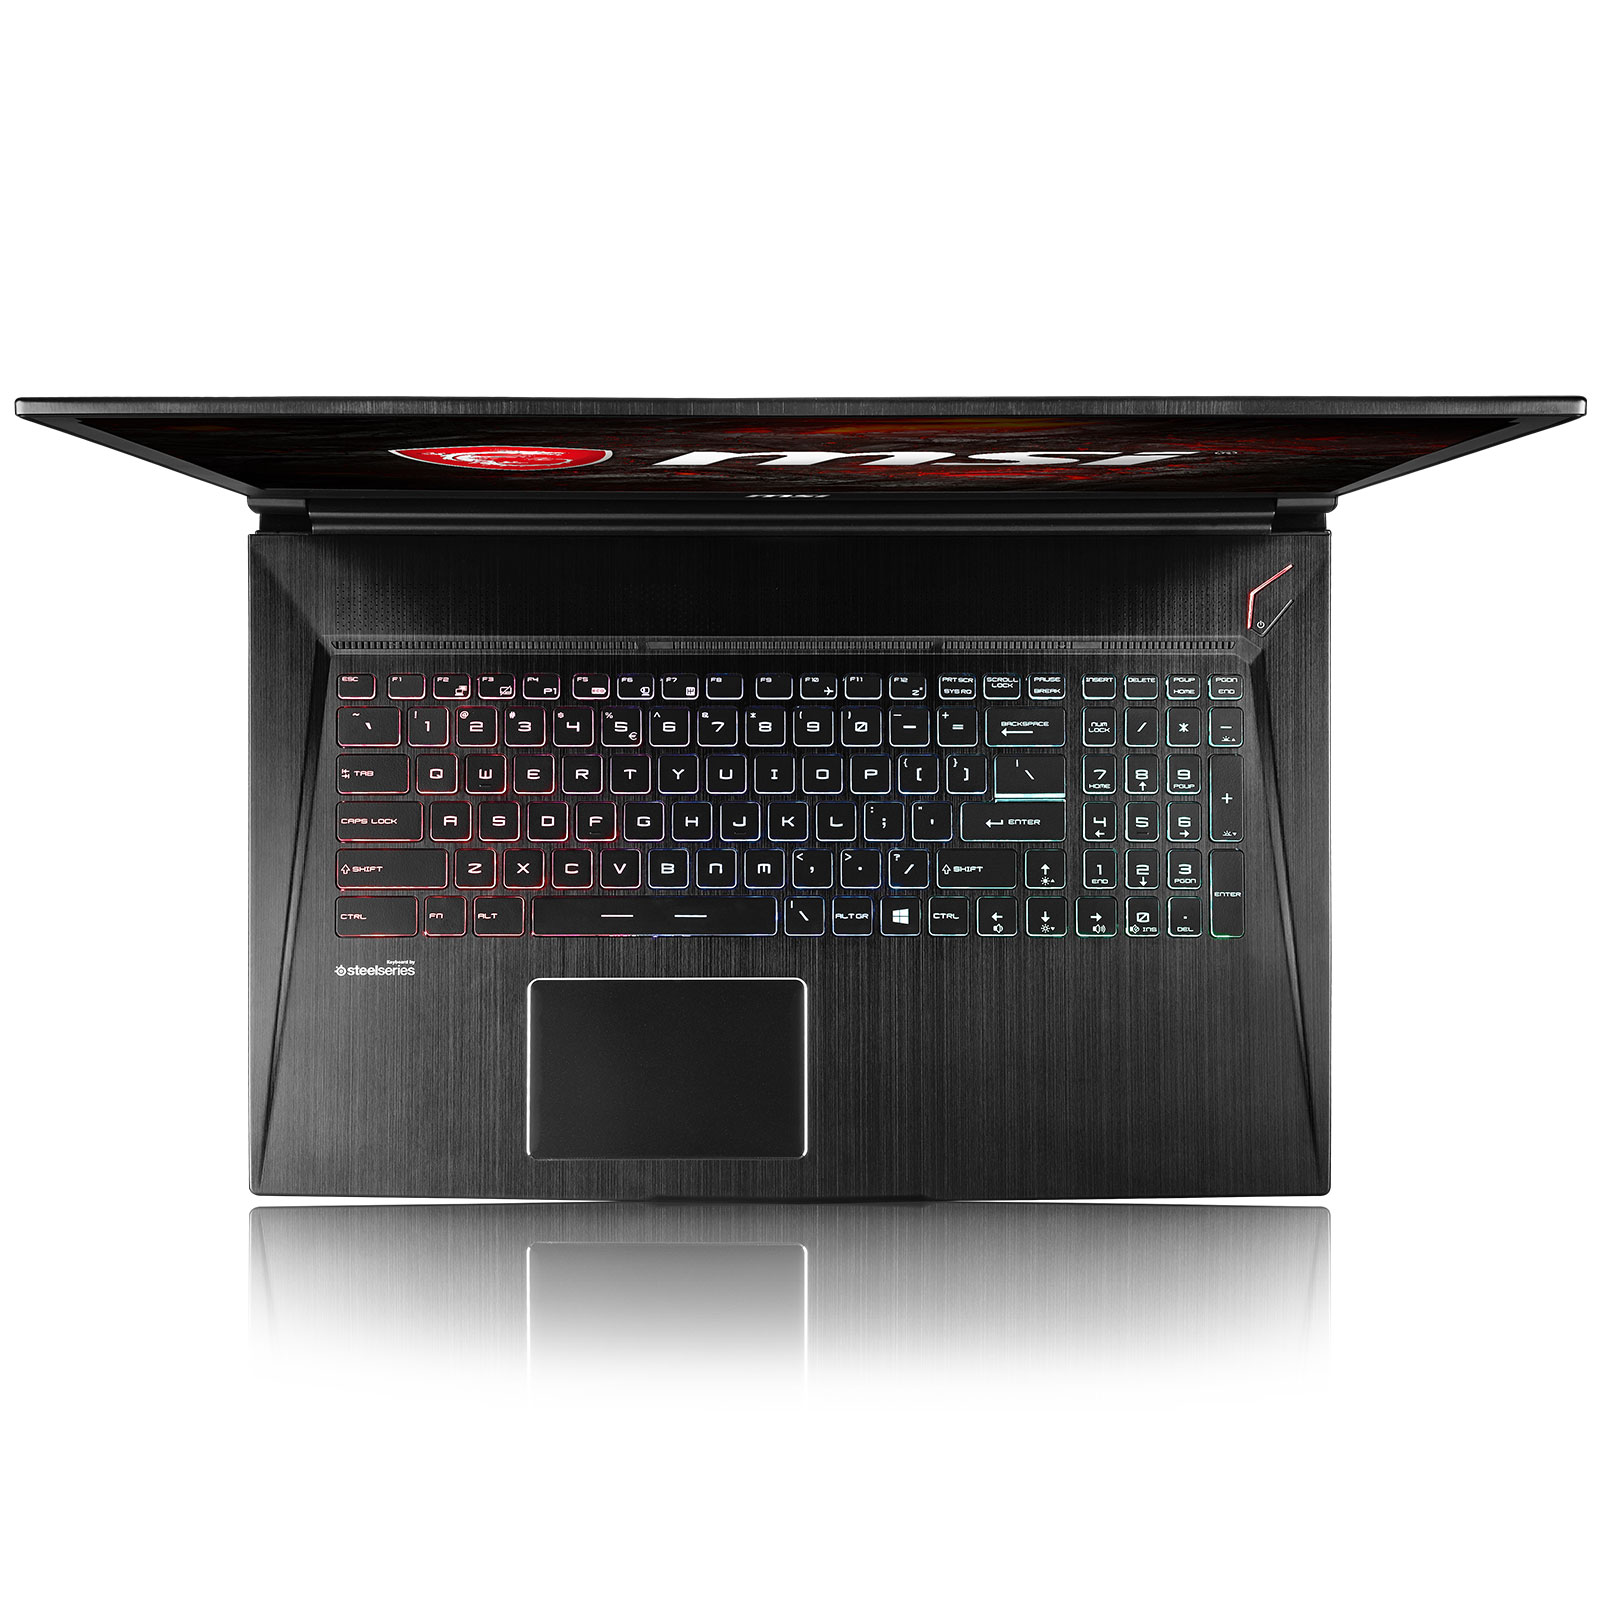 MSI 9S7-17B312-013 - PC portable MSI - Cybertek.fr - 1